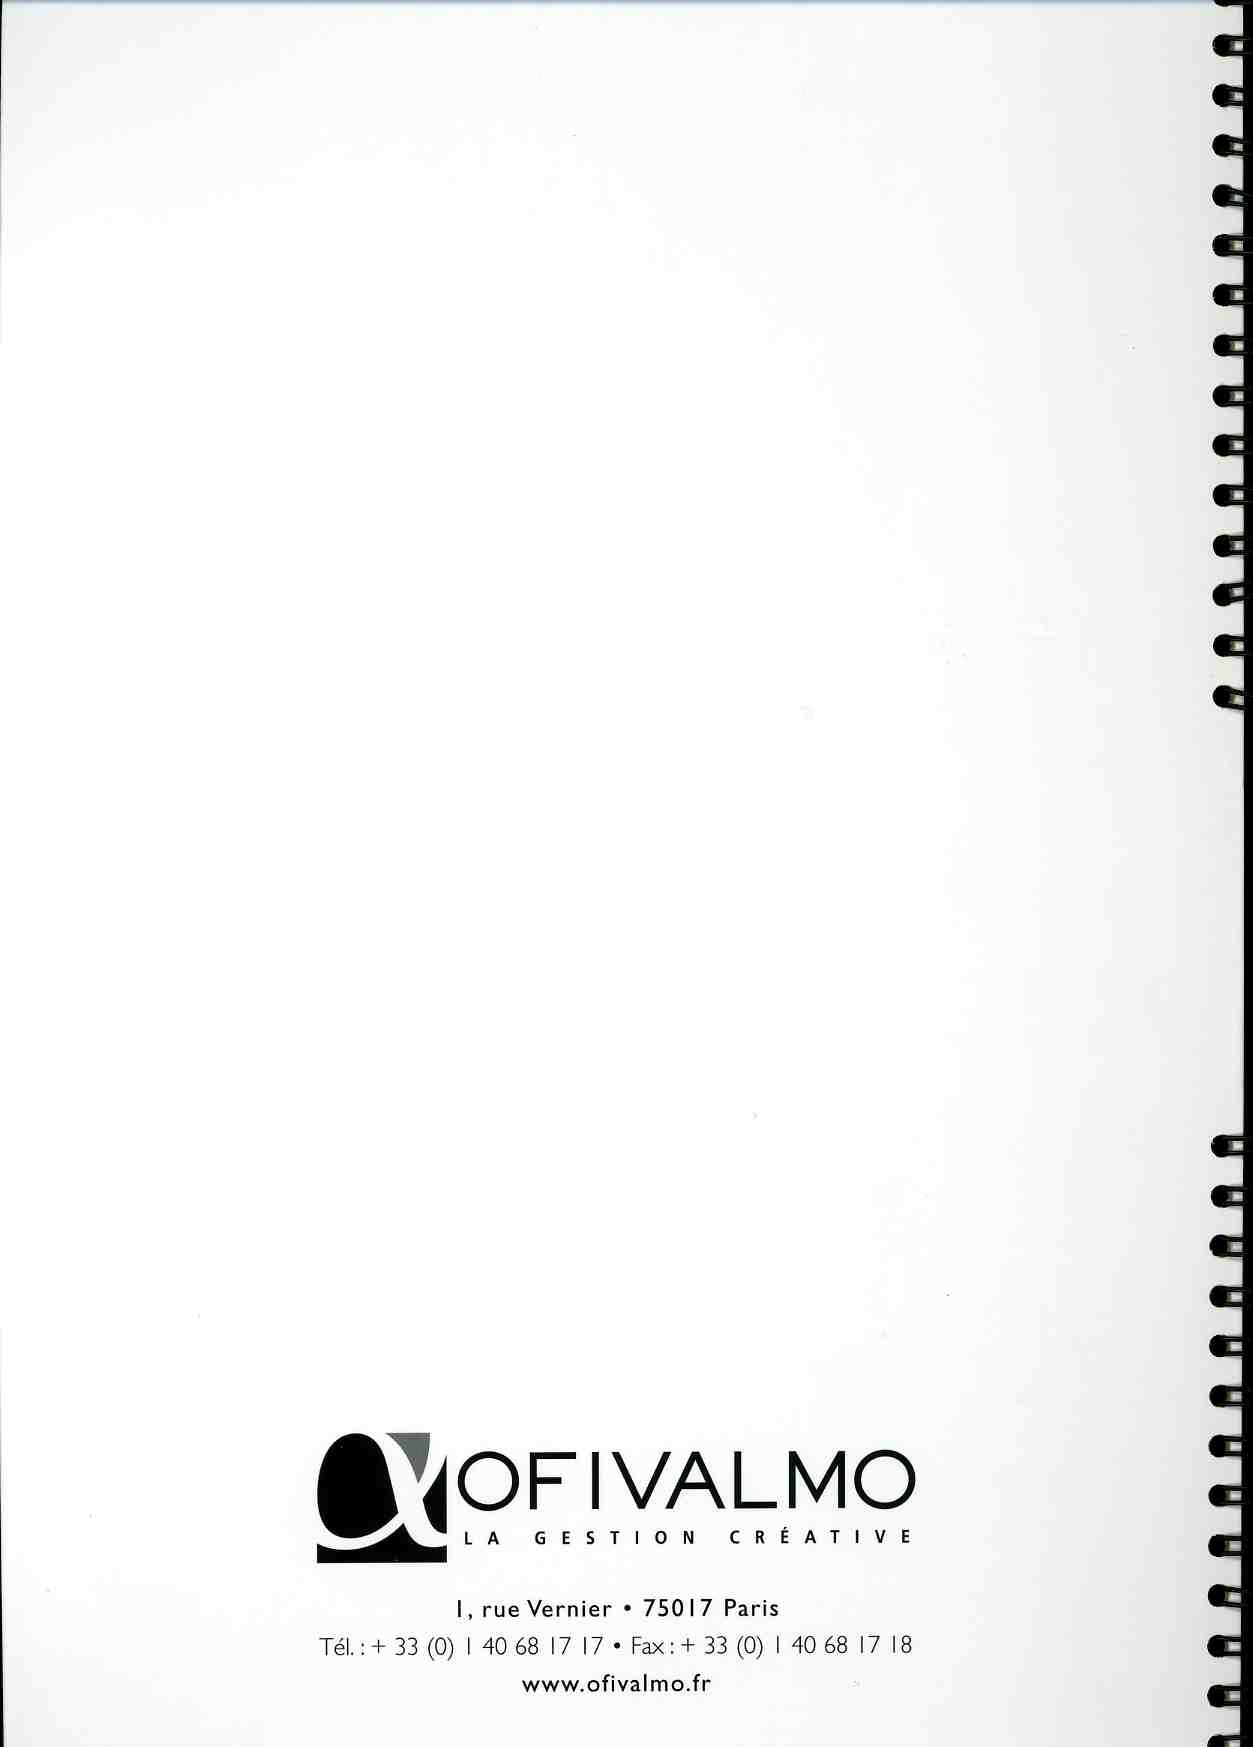 Catalogue Mécénat - OFILVAMO 2000-2006